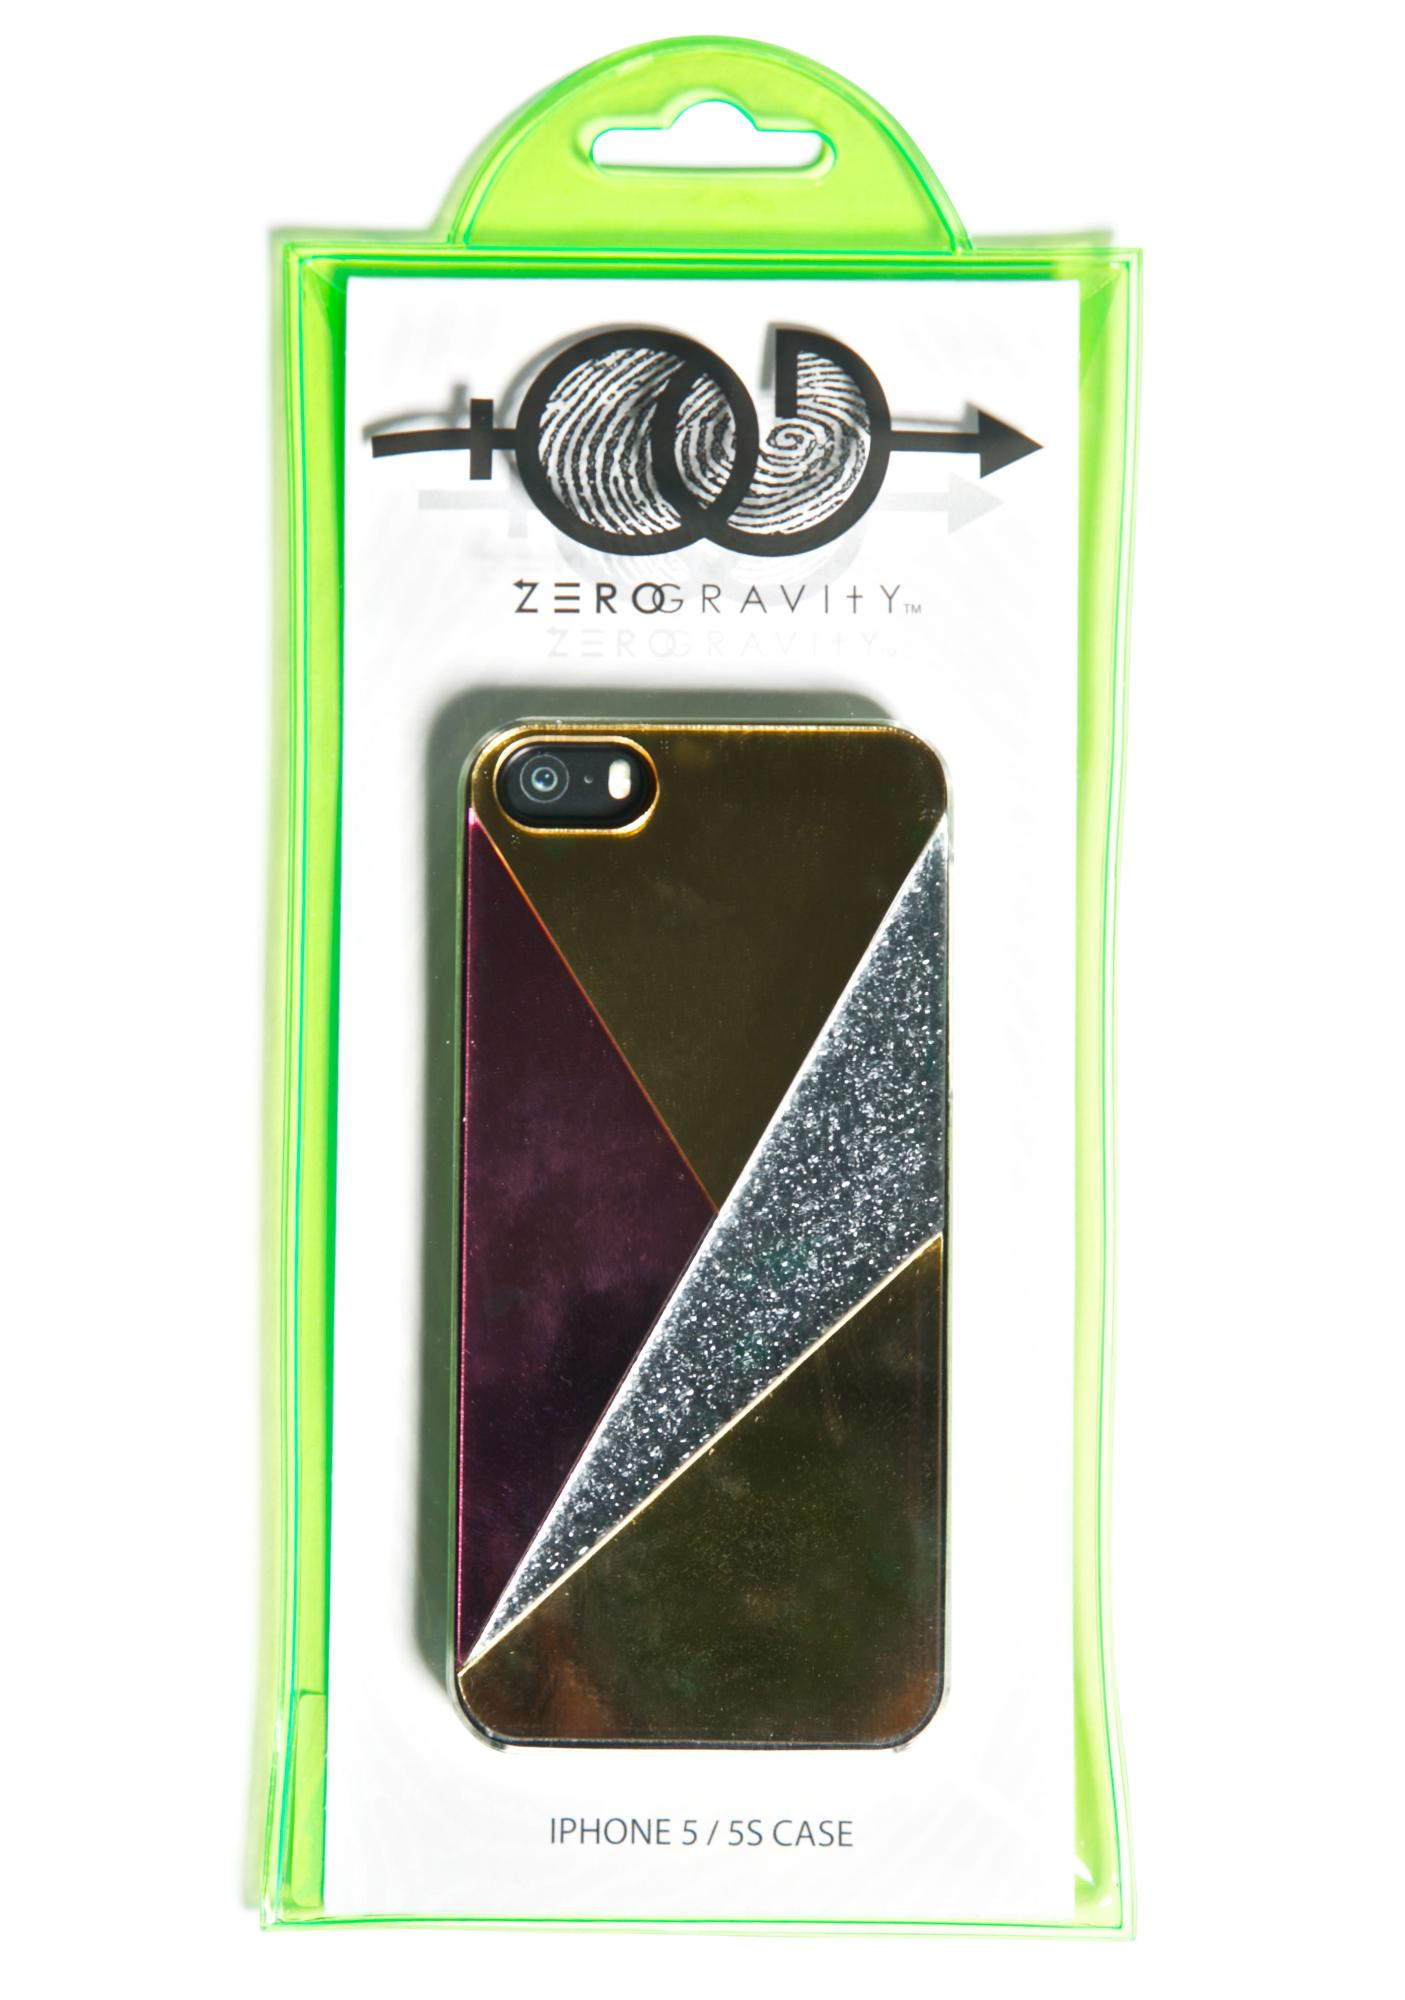 Zero Gravity Nouveau iPhone 5/5S Case